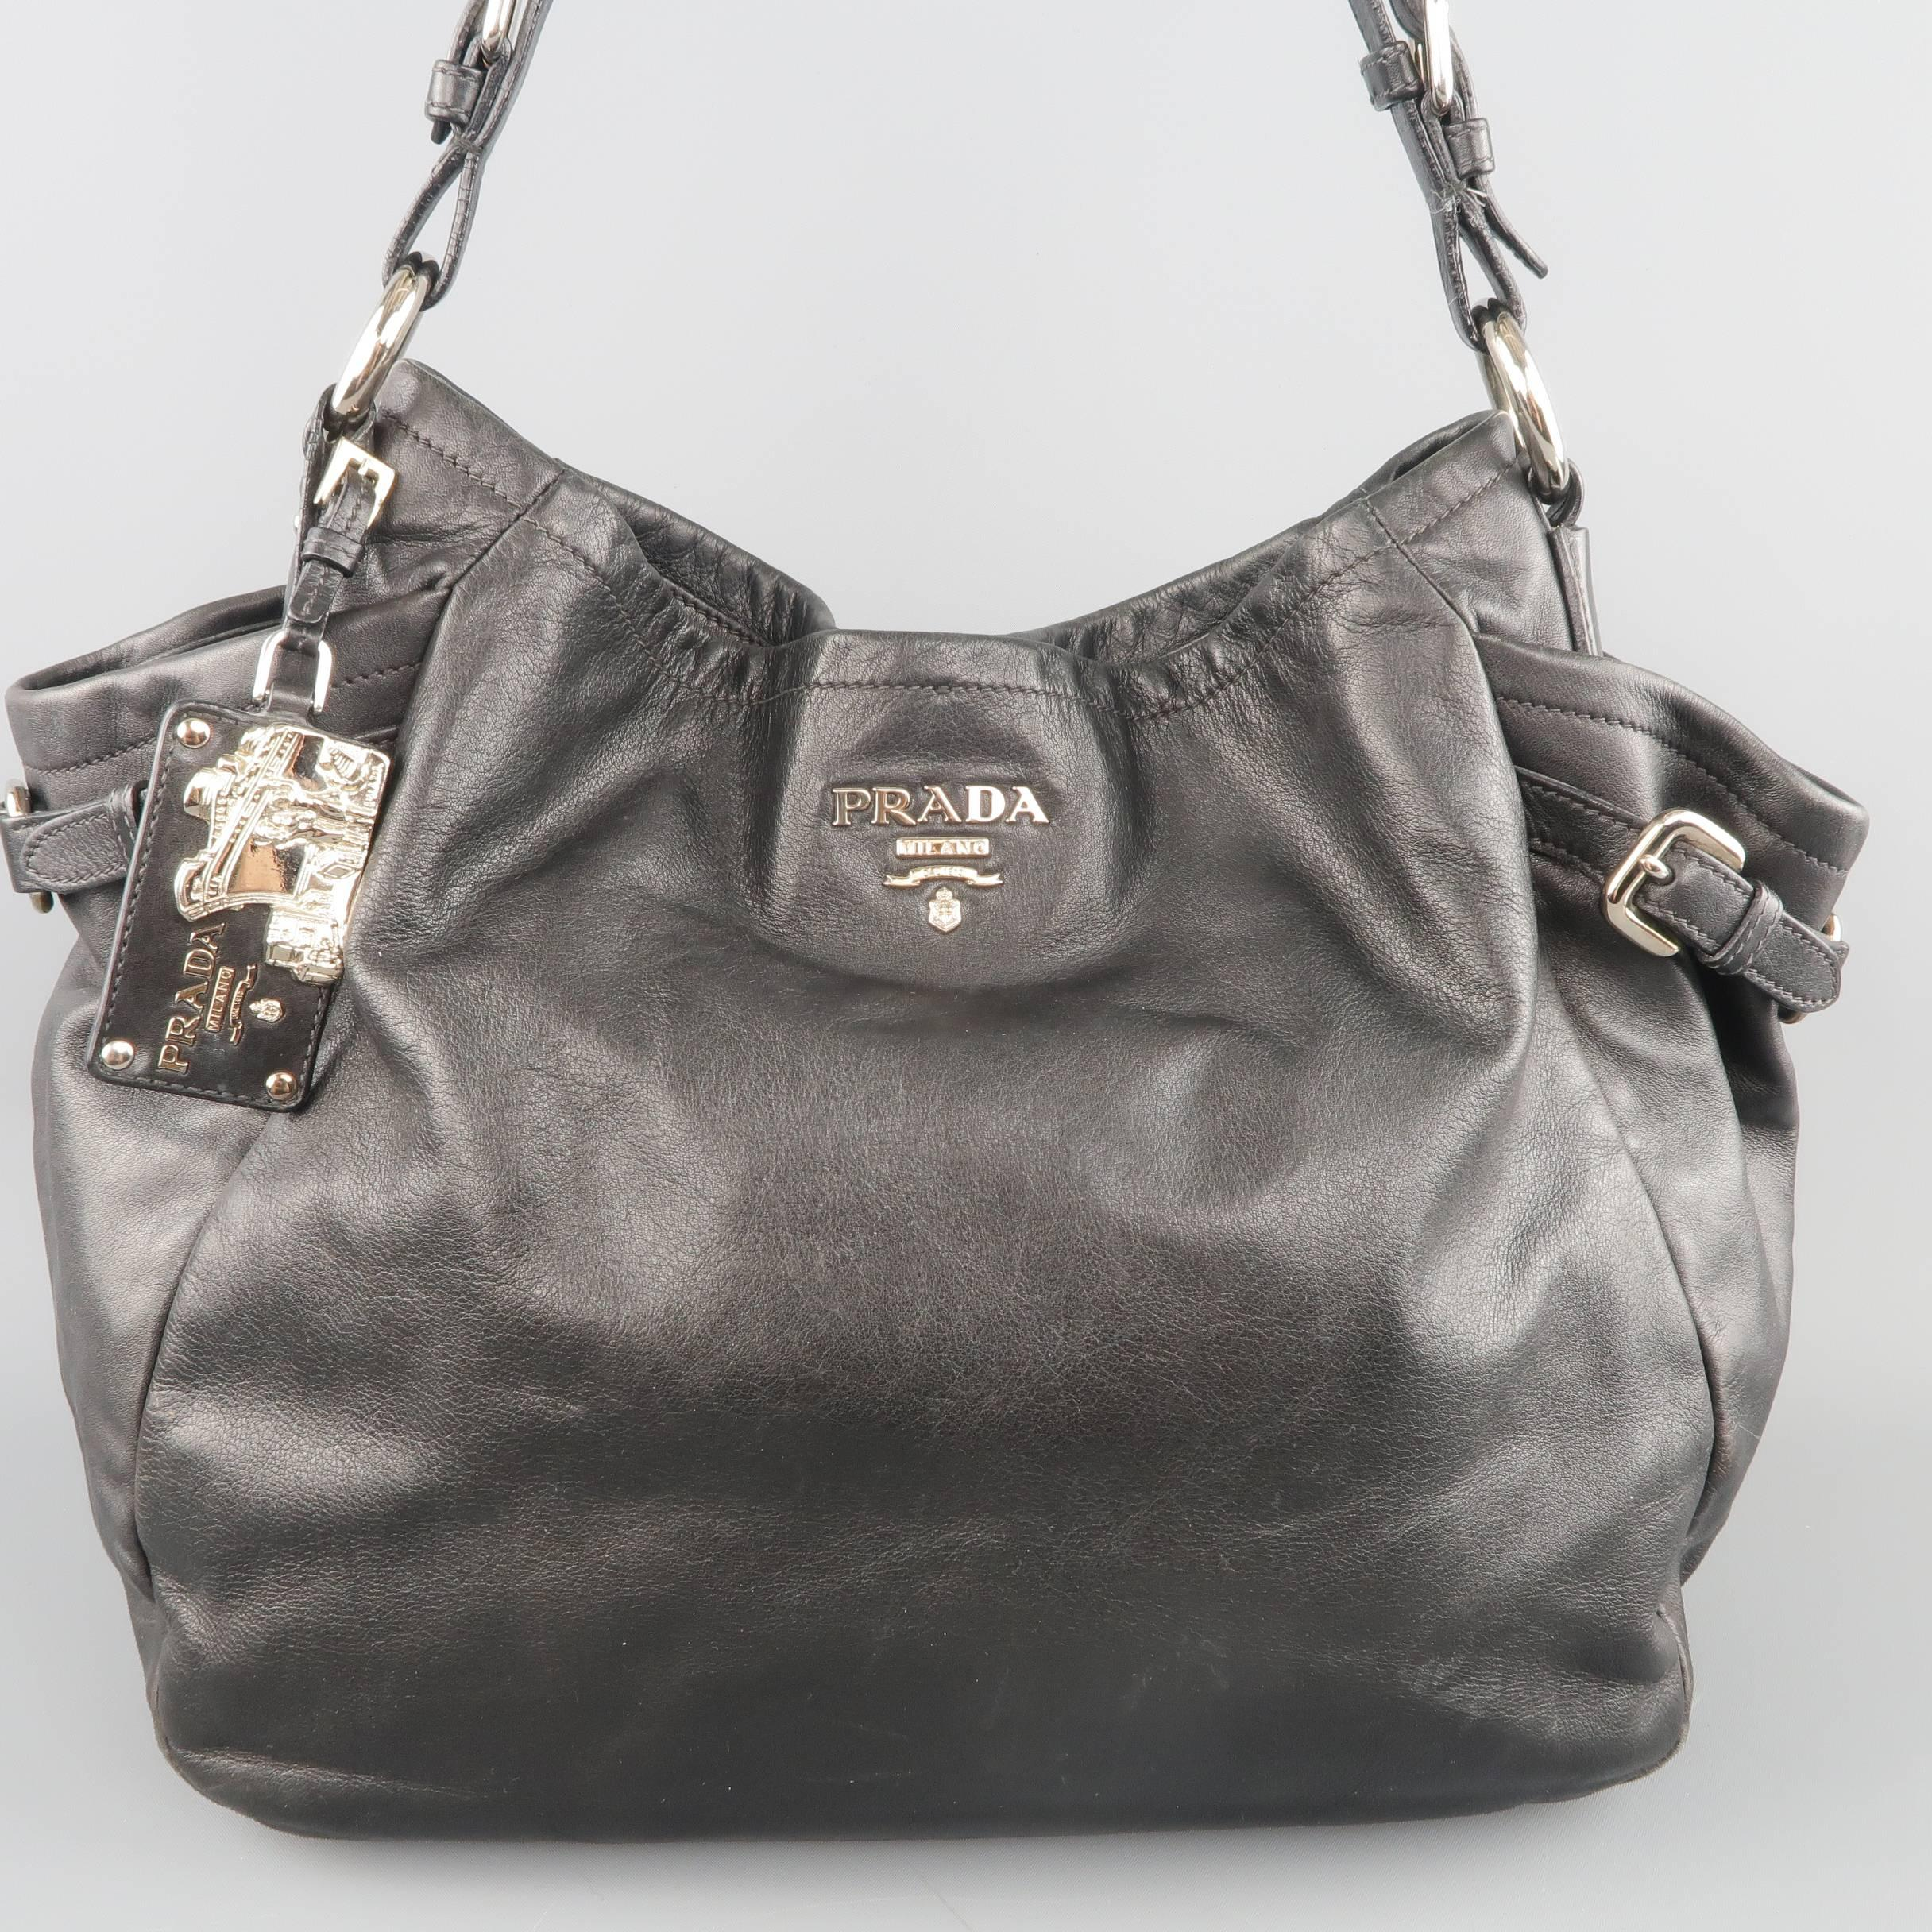 c9b67f49d8b1 ... clearance classic prada hobo shoulder bag comes in soft black leather  and features a silver tone